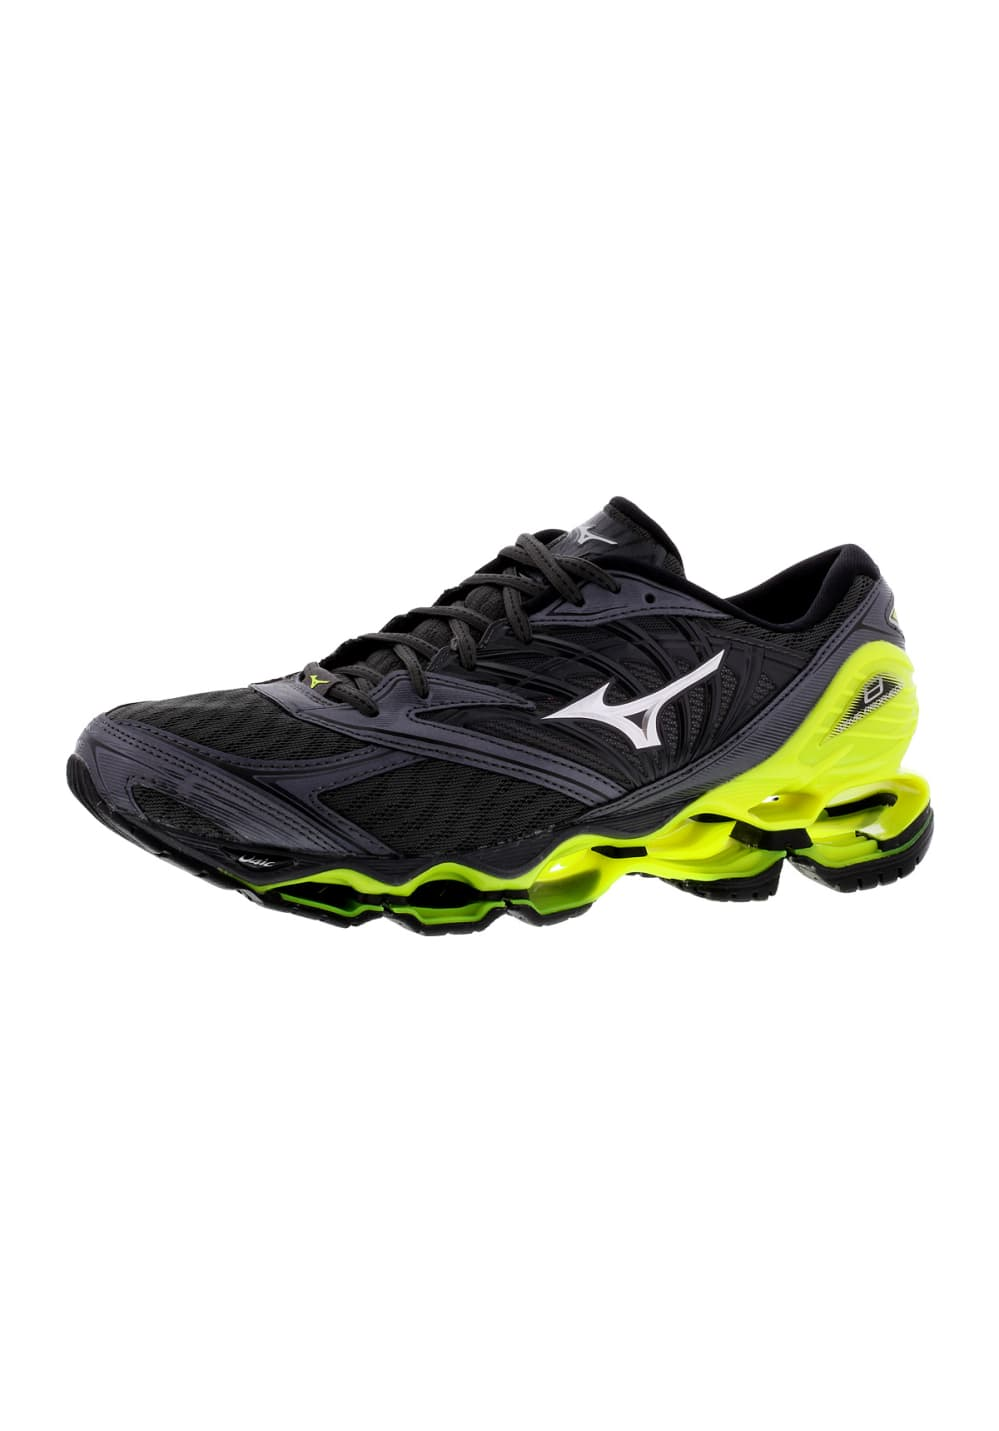 low priced 5b4c7 576fa Next. Mizuno. Wave Prophecy 8 - Chaussures running pour Homme